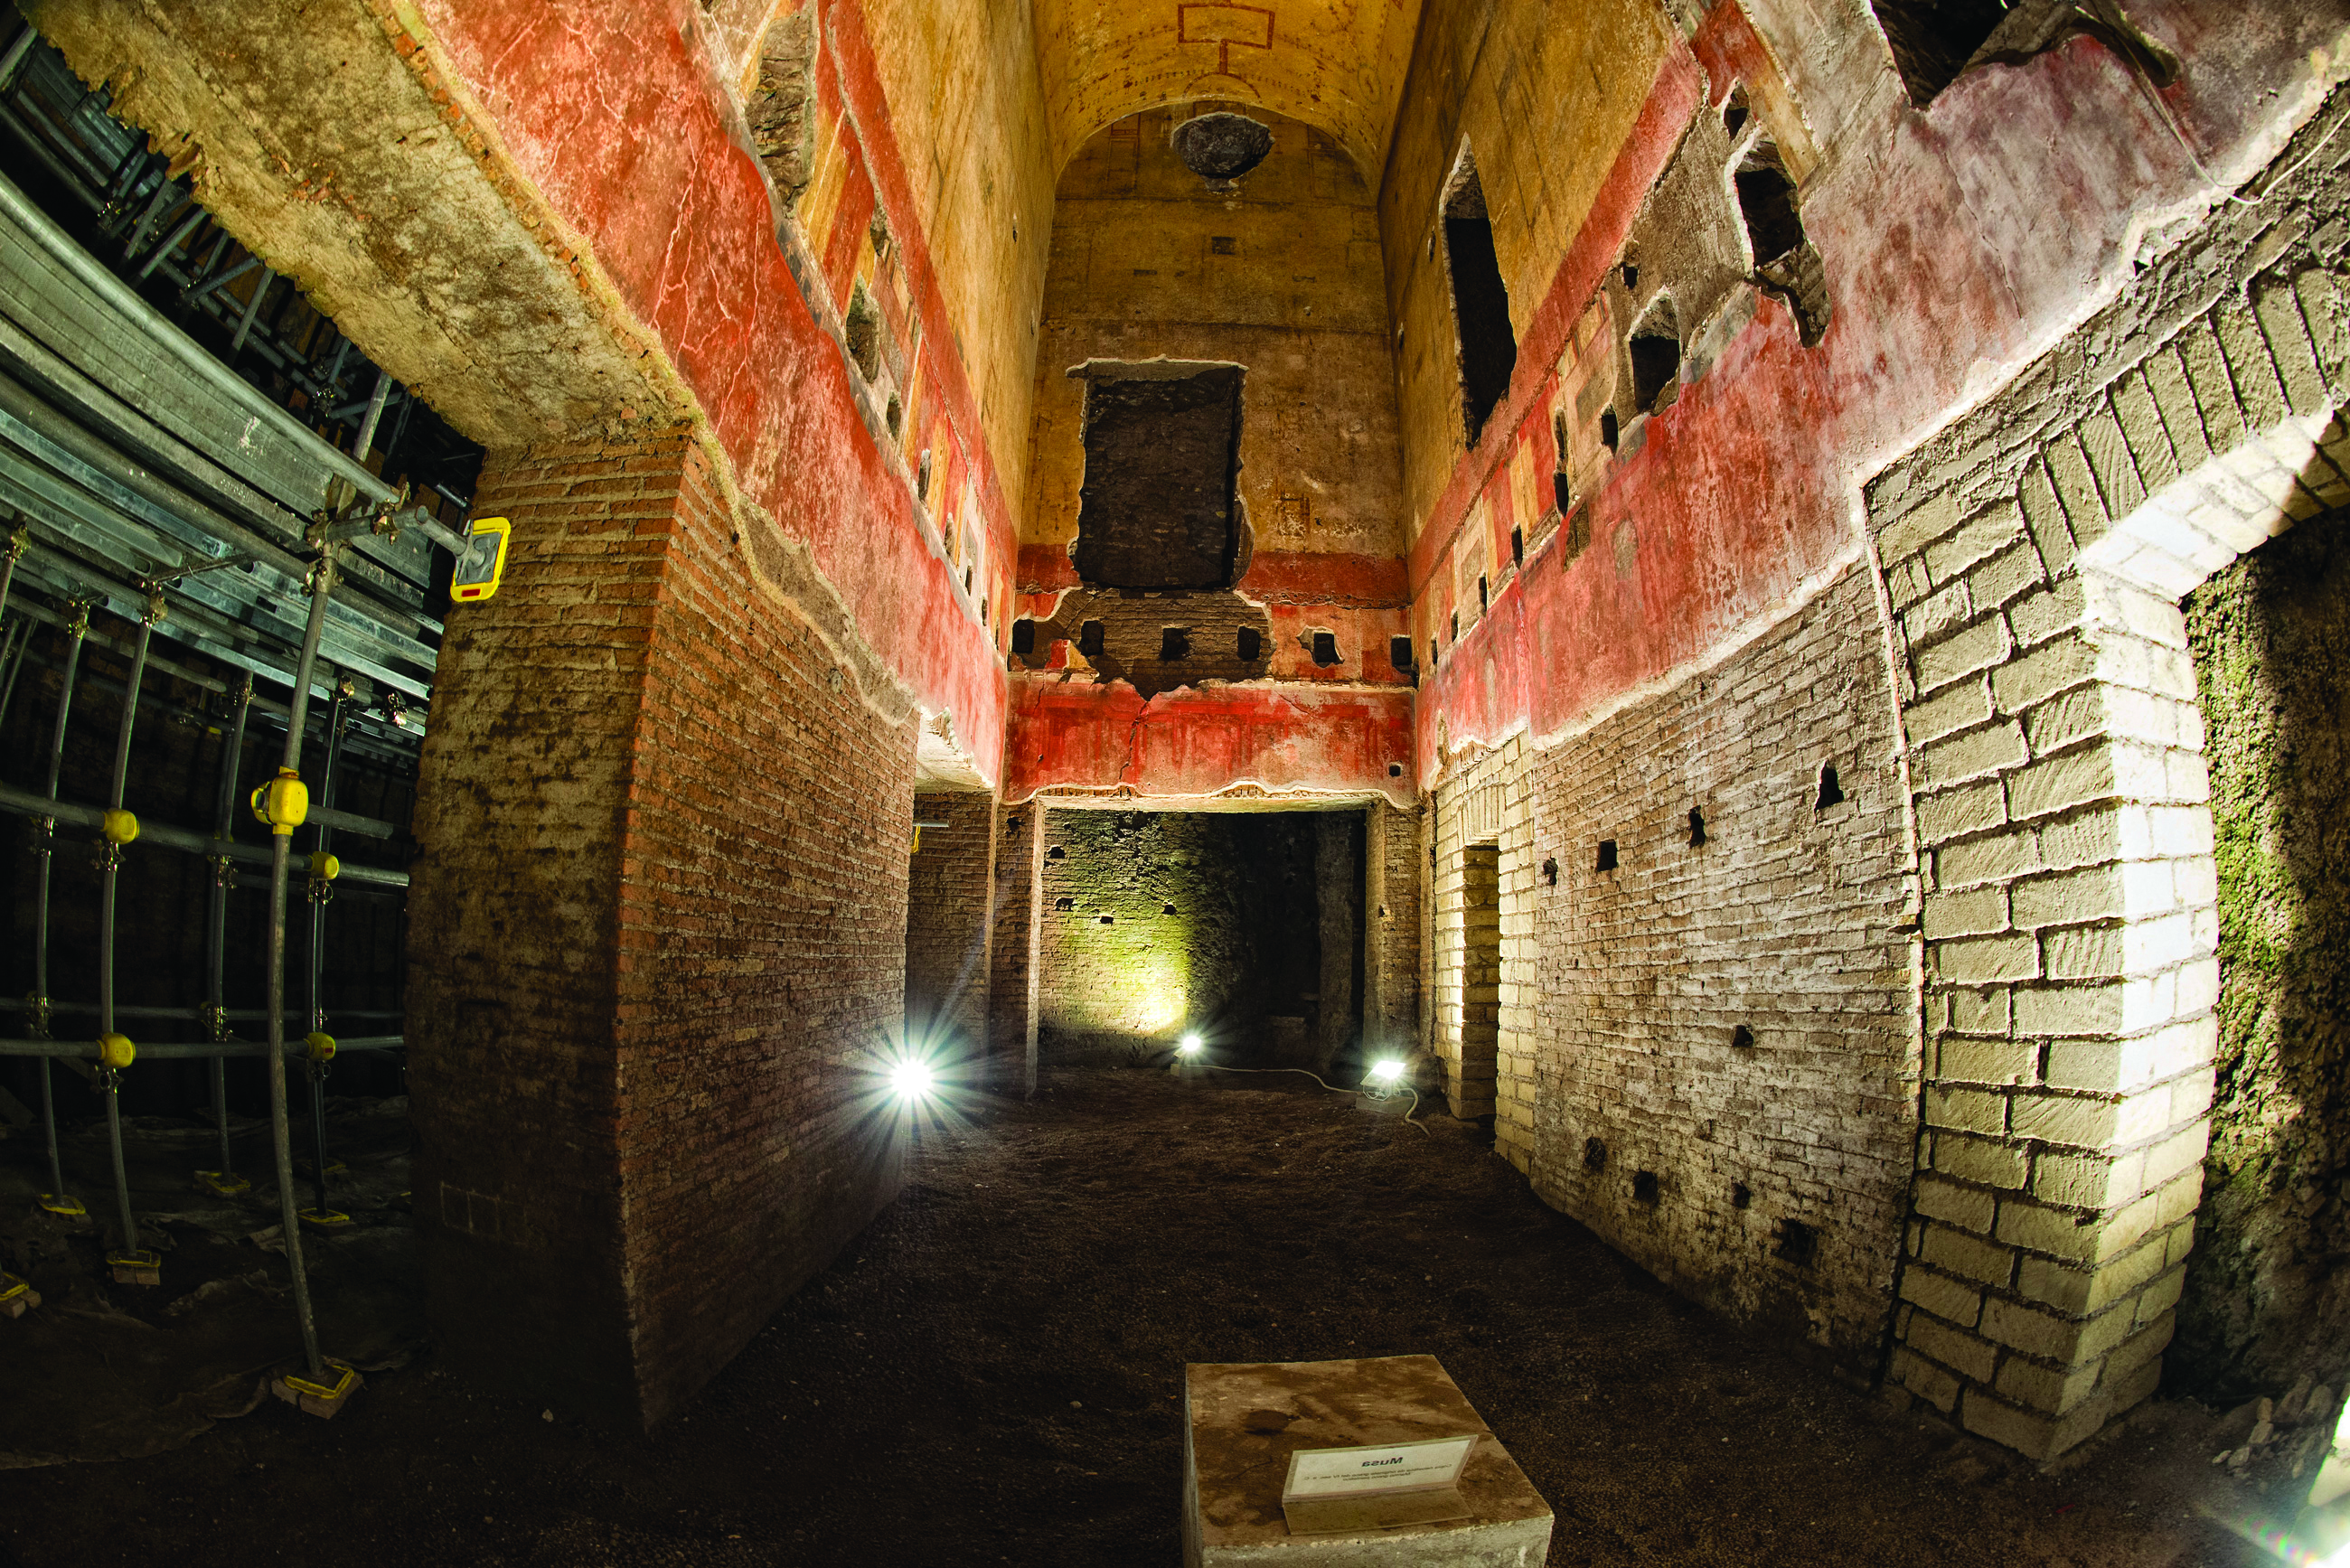 Domus Aurea exploring antique roman ruins being restored